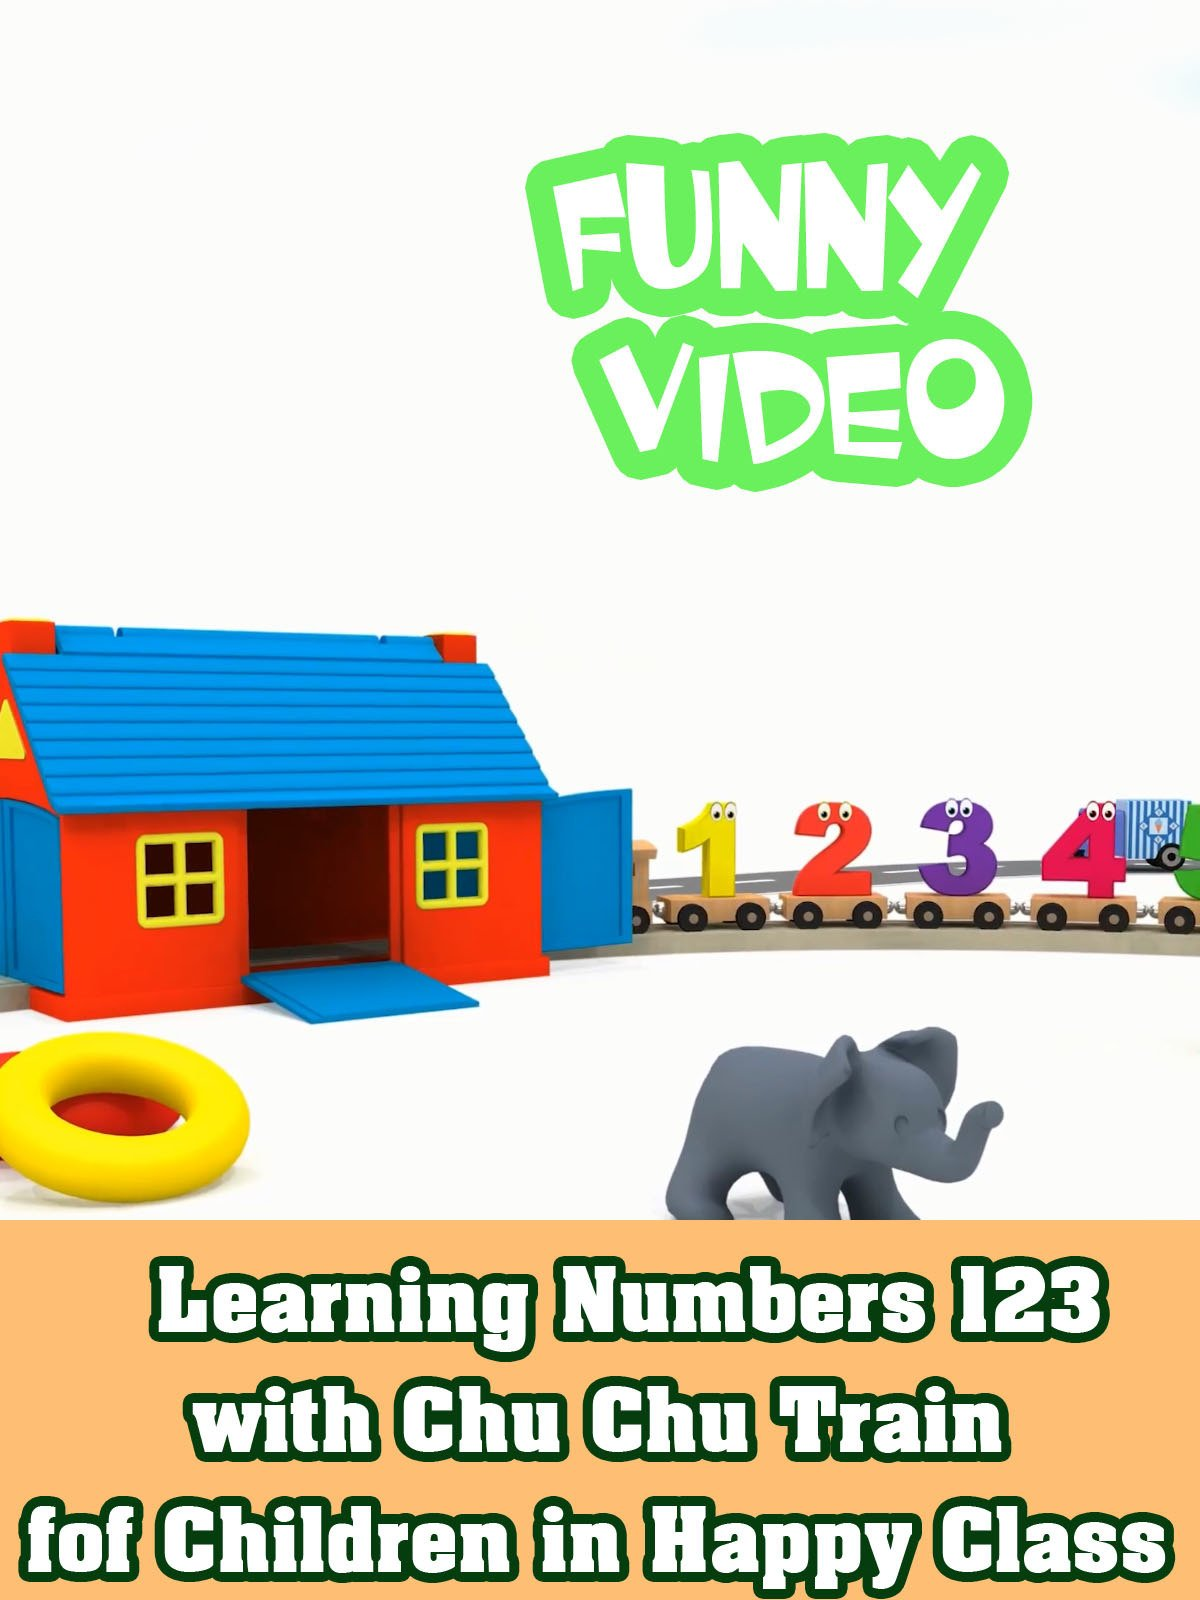 Learning Numbers 123 with Chu Chu Train fof Children in Happy Class